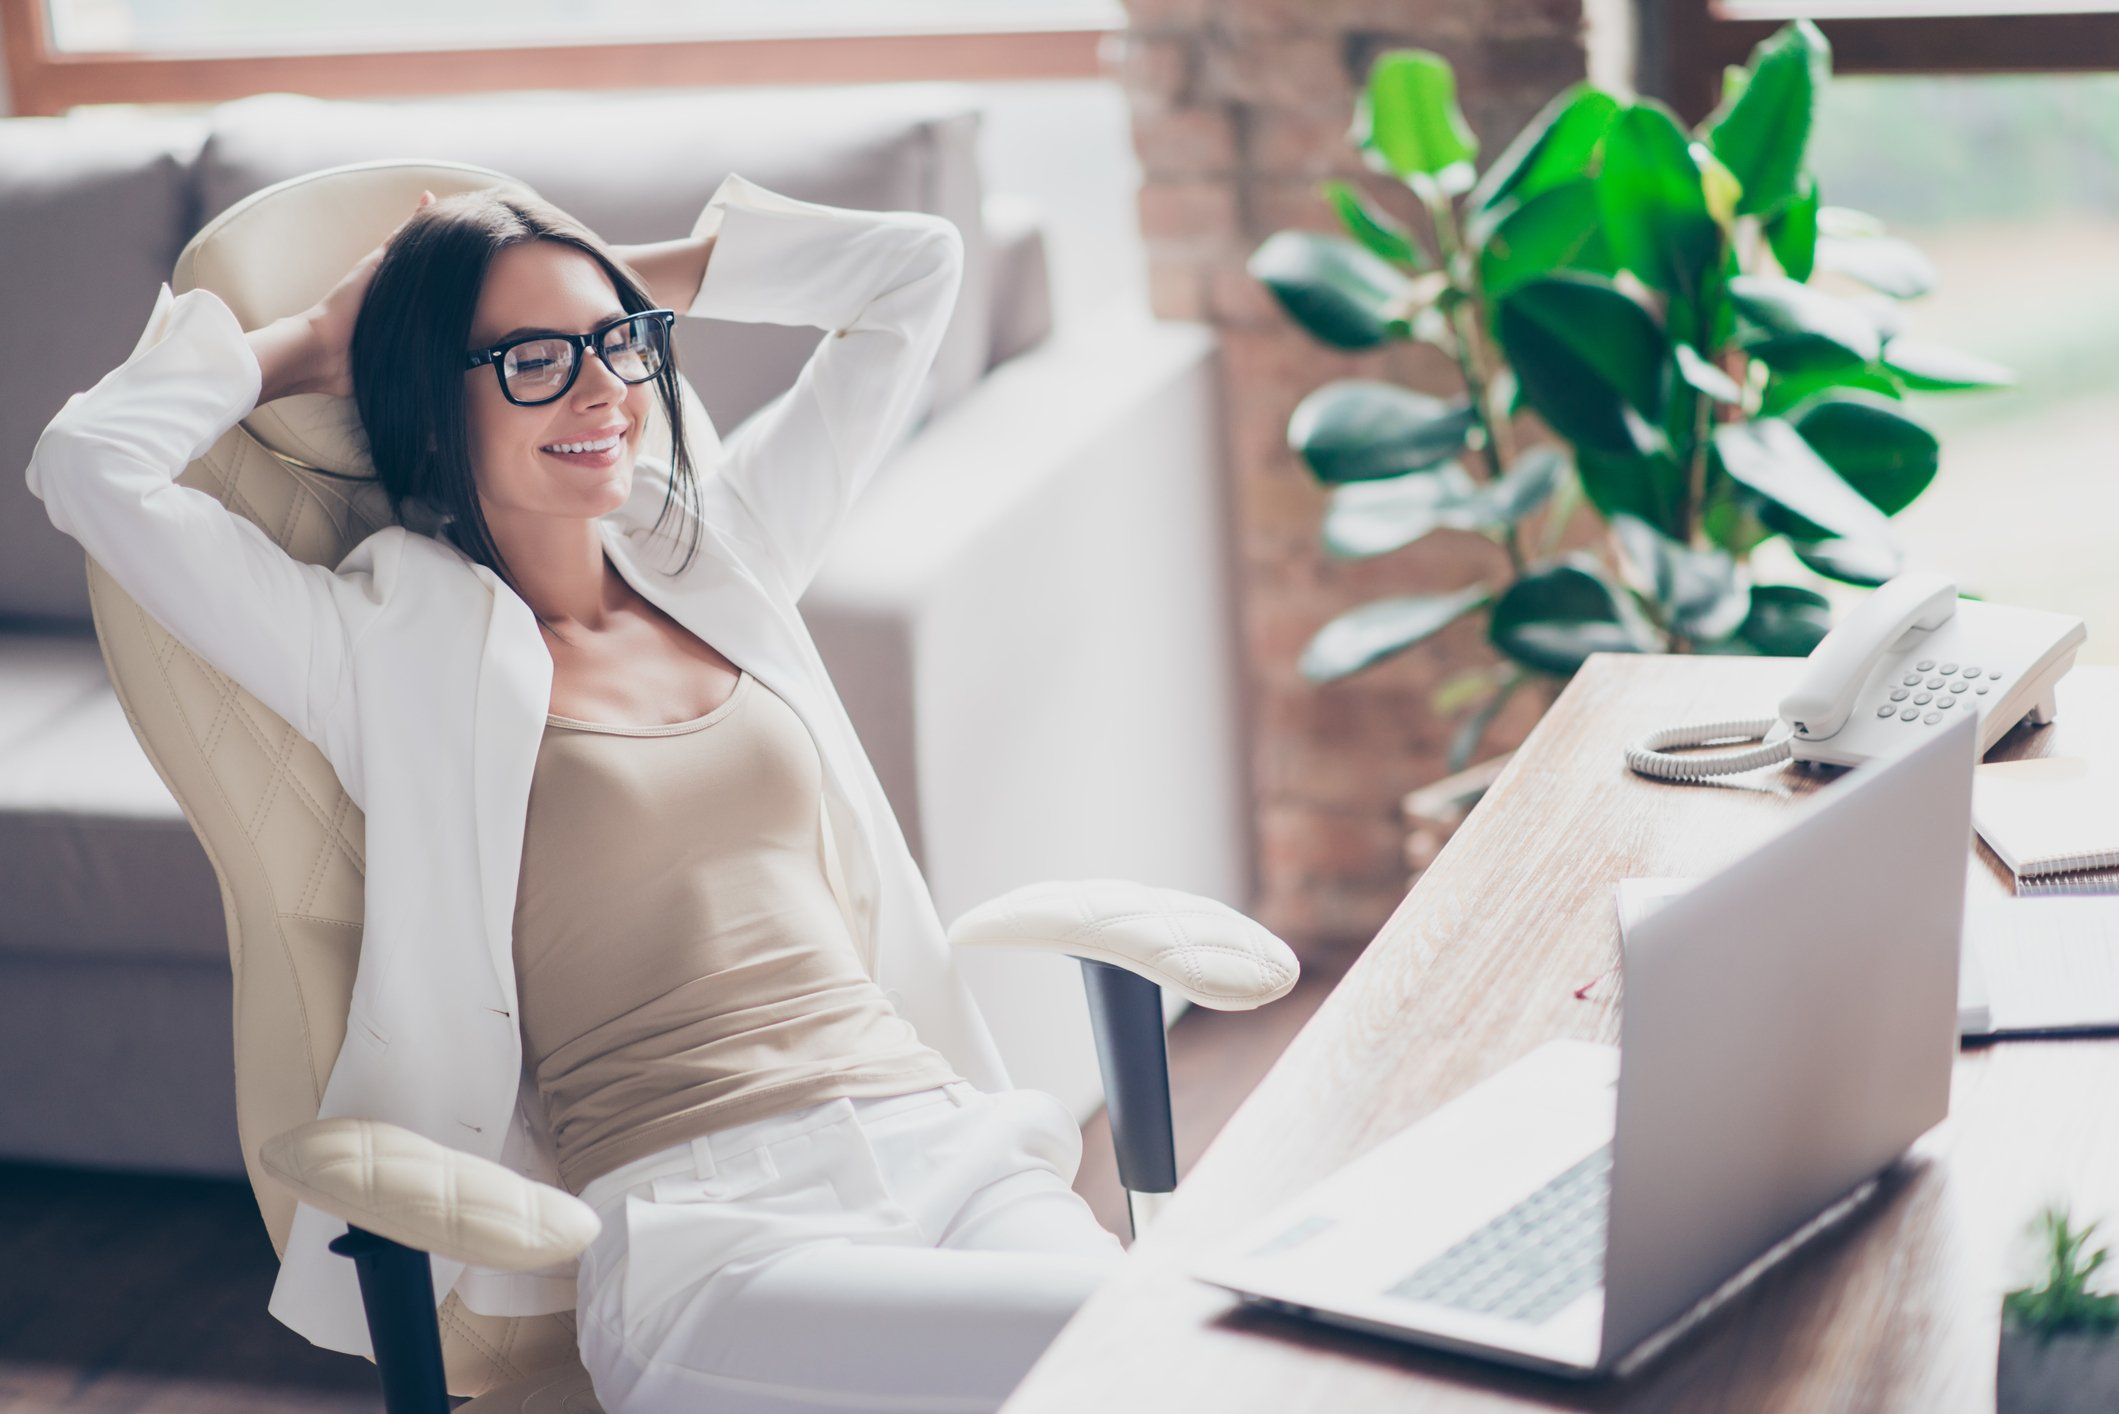 Happy Woman Leaning Back In Chair Looking At Laptop